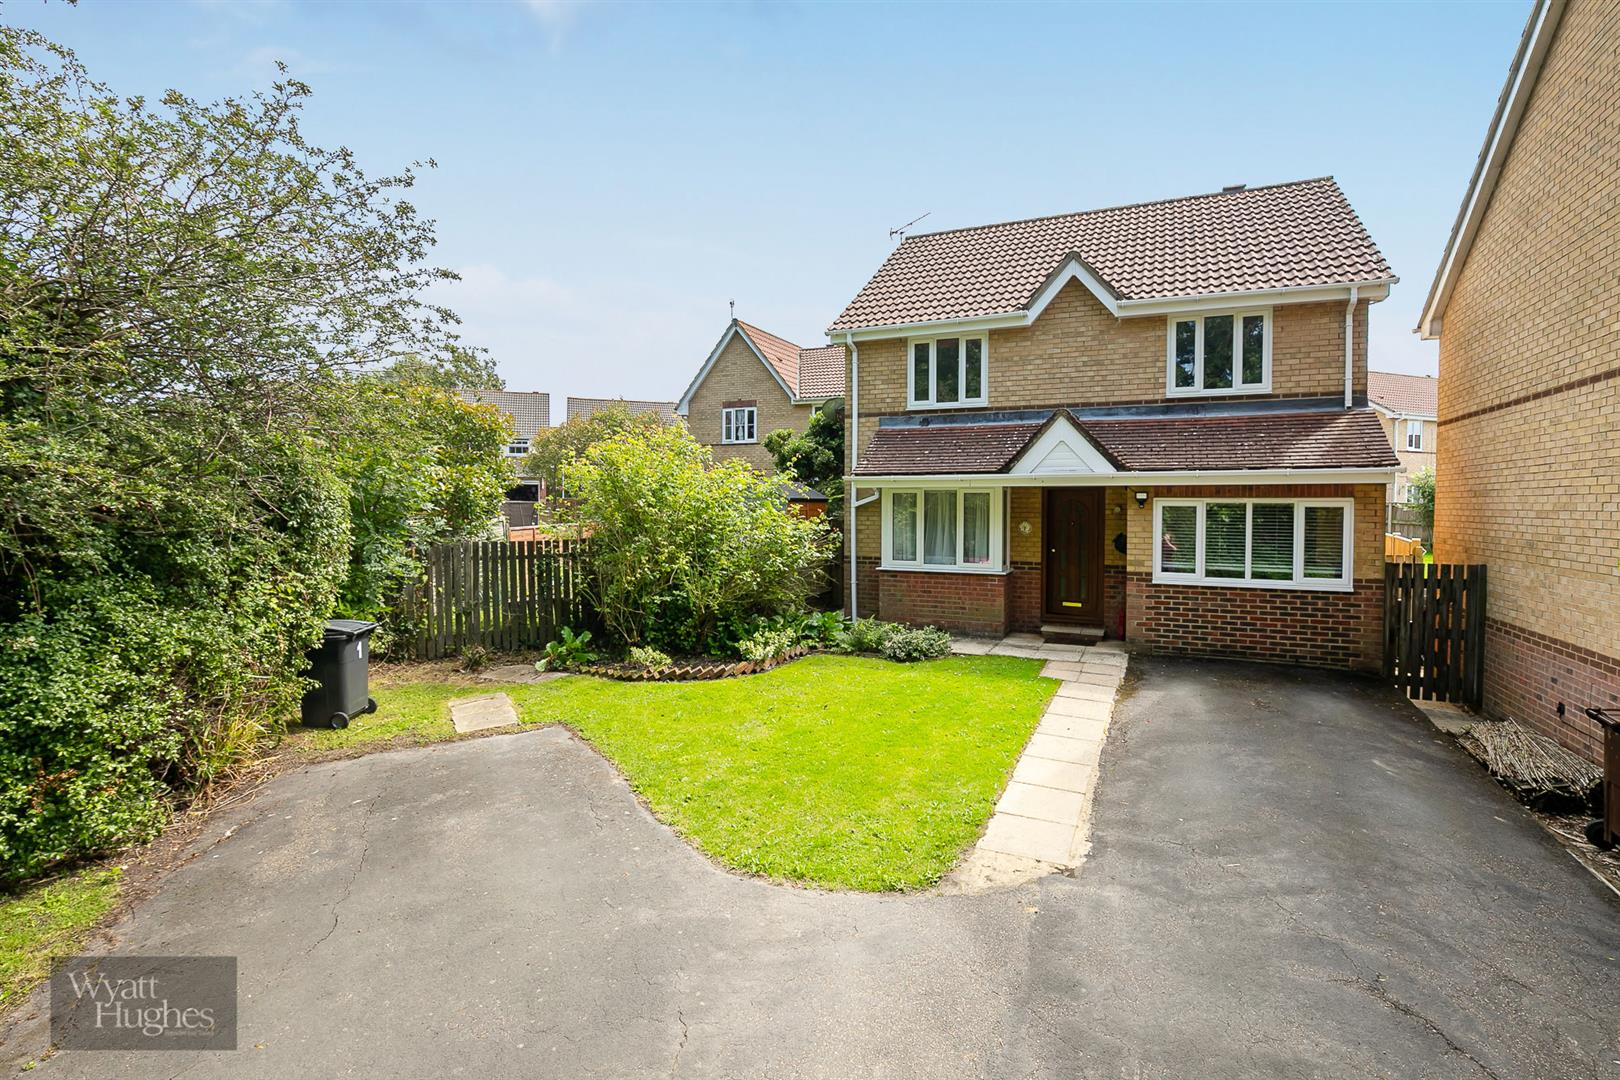 3 bed detached house for sale in Mulberry Walk, St. Leonards-On-Sea, TN37